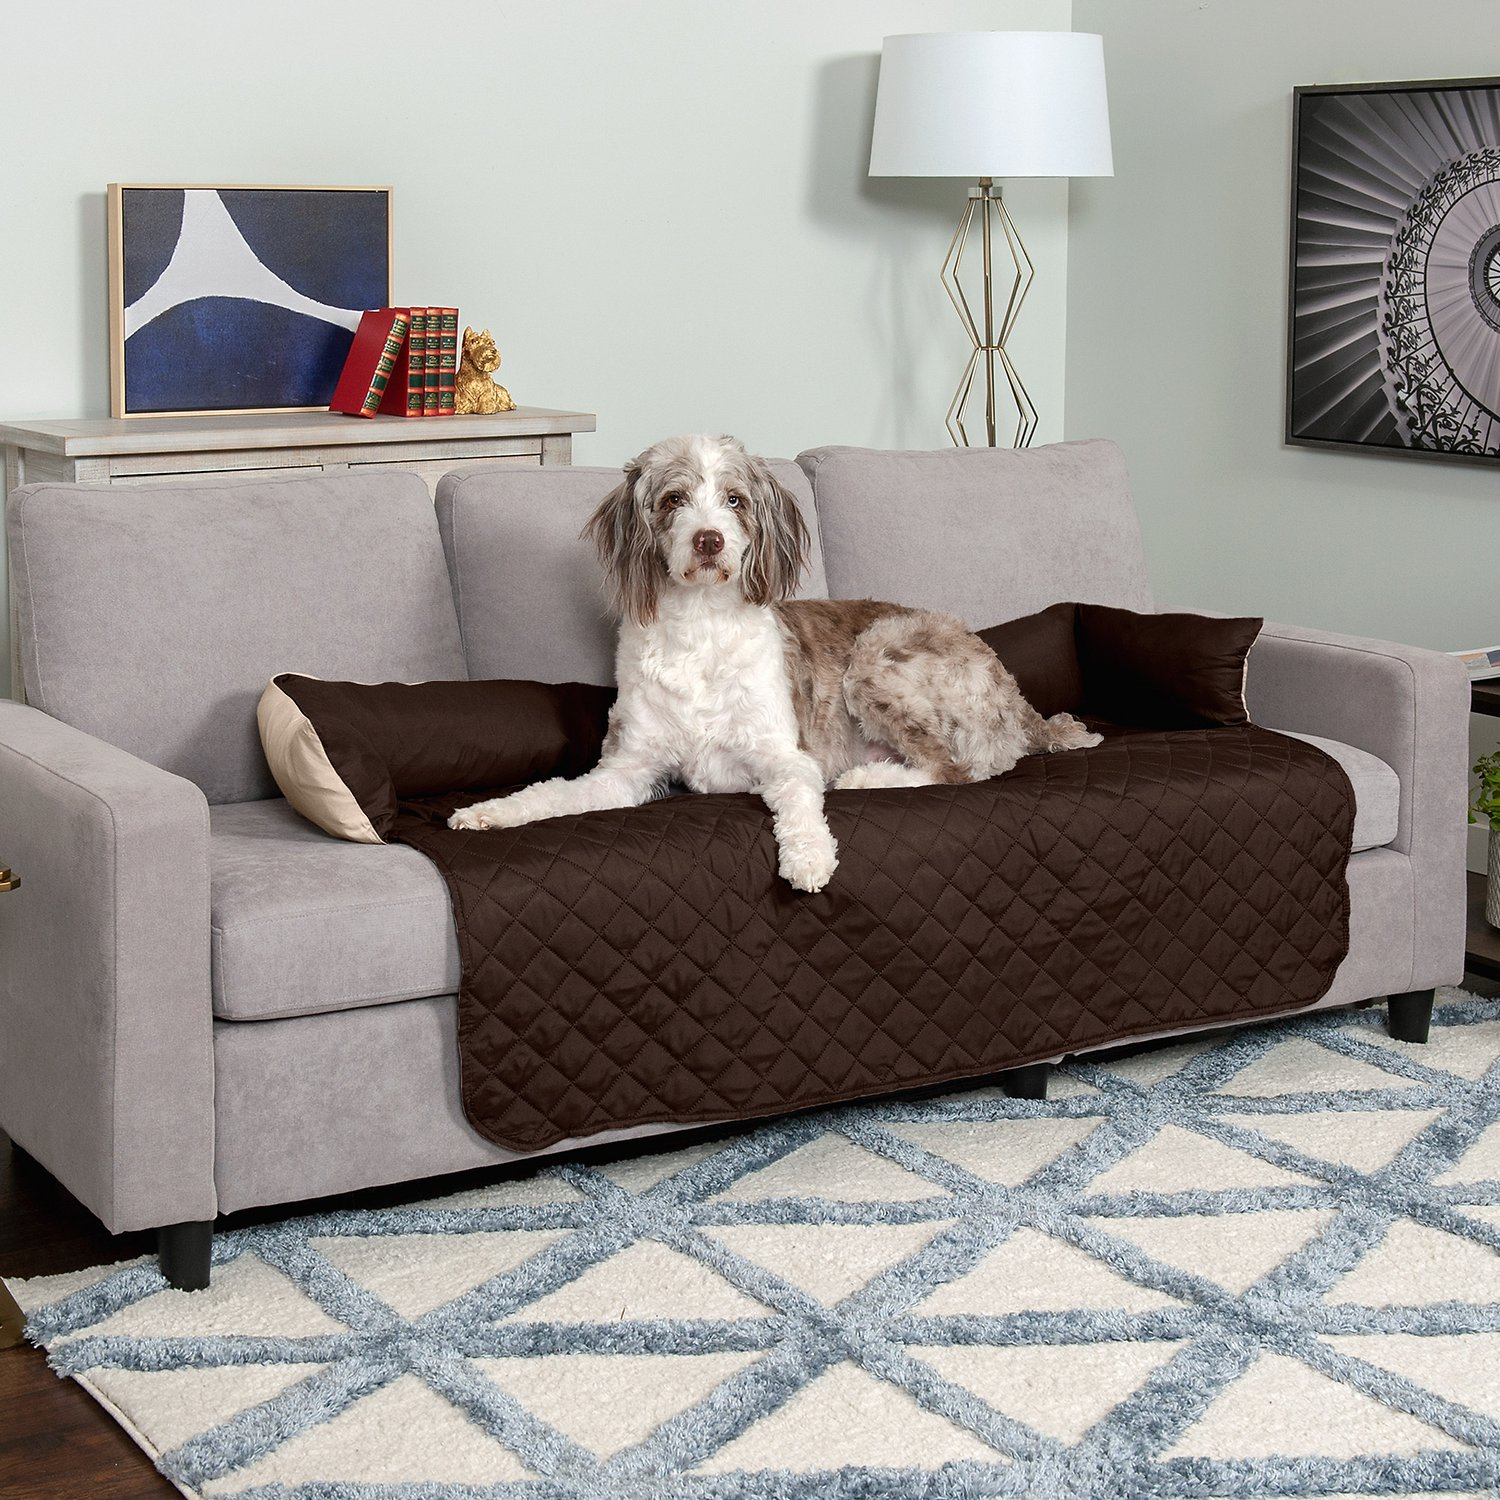 Furhaven Sofa Buddy Dog Amp Cat Bed Furniture Cover Espresso Clay X Large Chewy Com